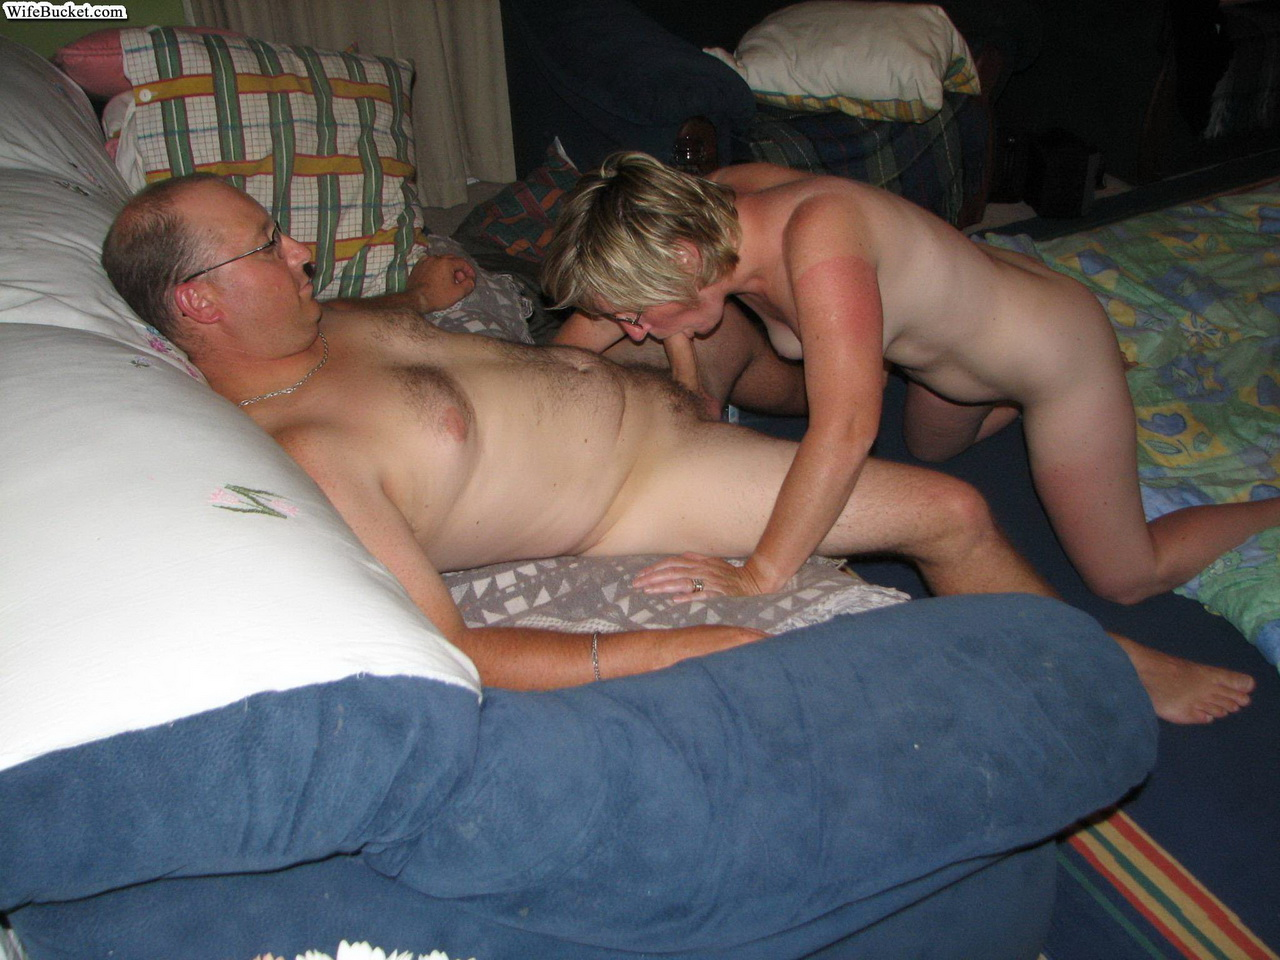 Wife blowjobs home videos